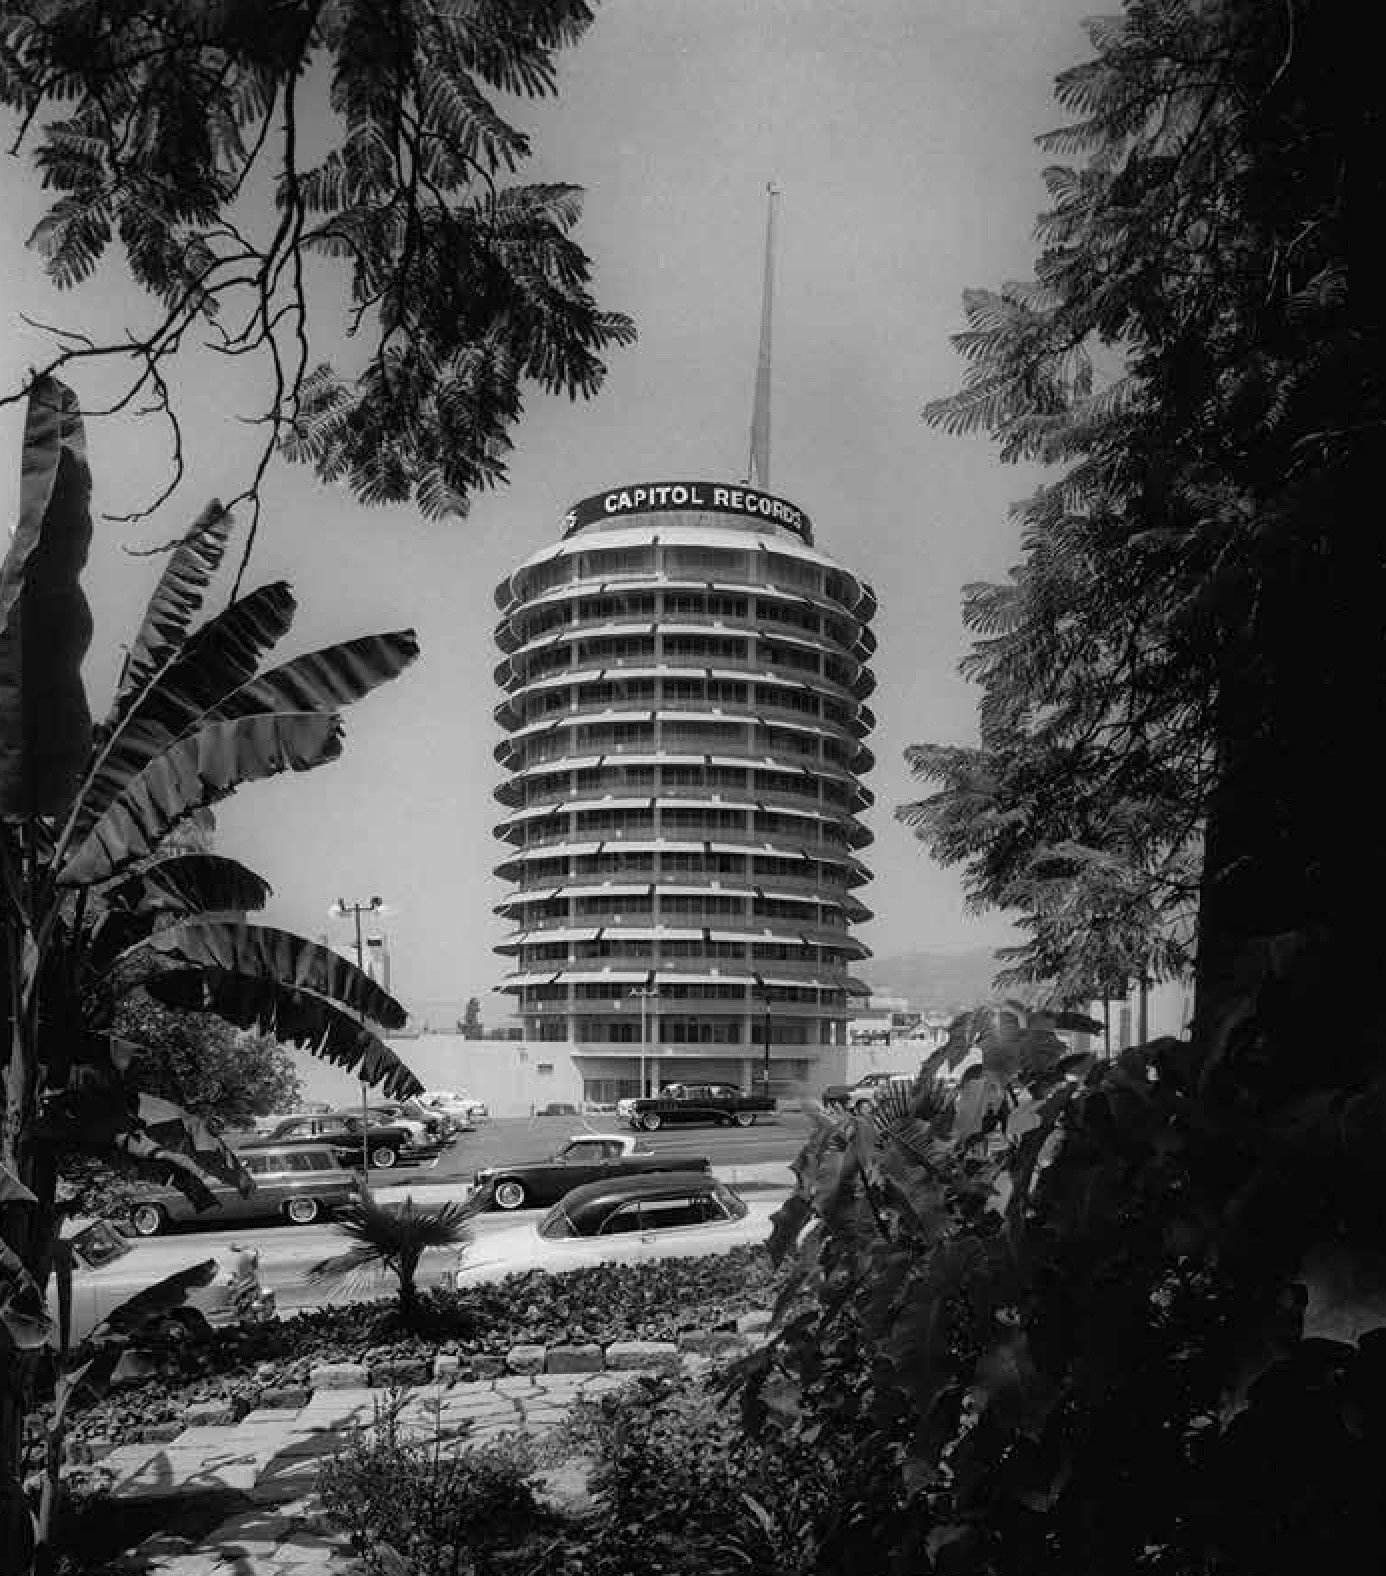 California Captured - The Capitol Records Building